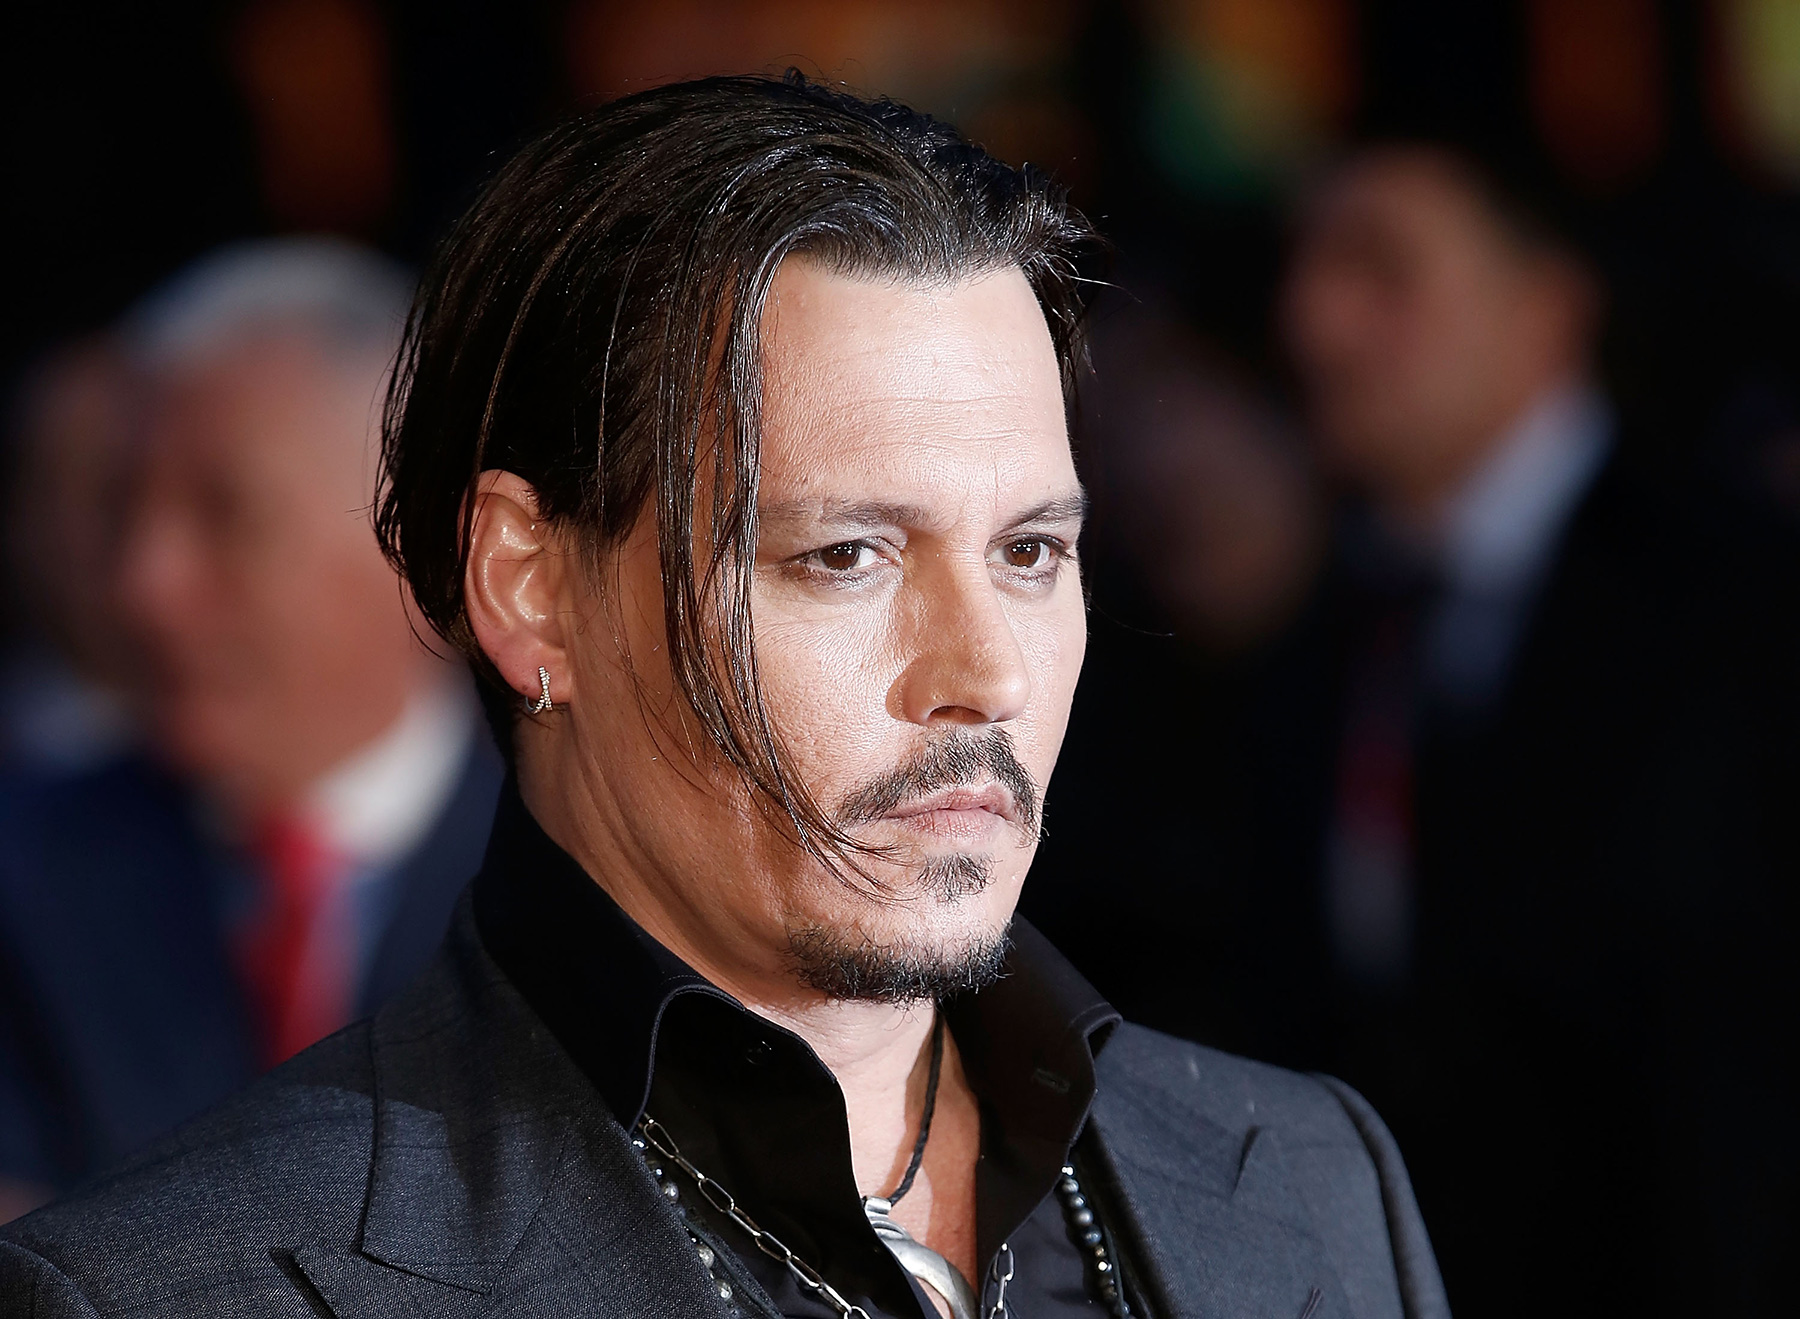 Johnny Depp's Lawsuit Could Soon Disrupt Hollywood Dealmakers